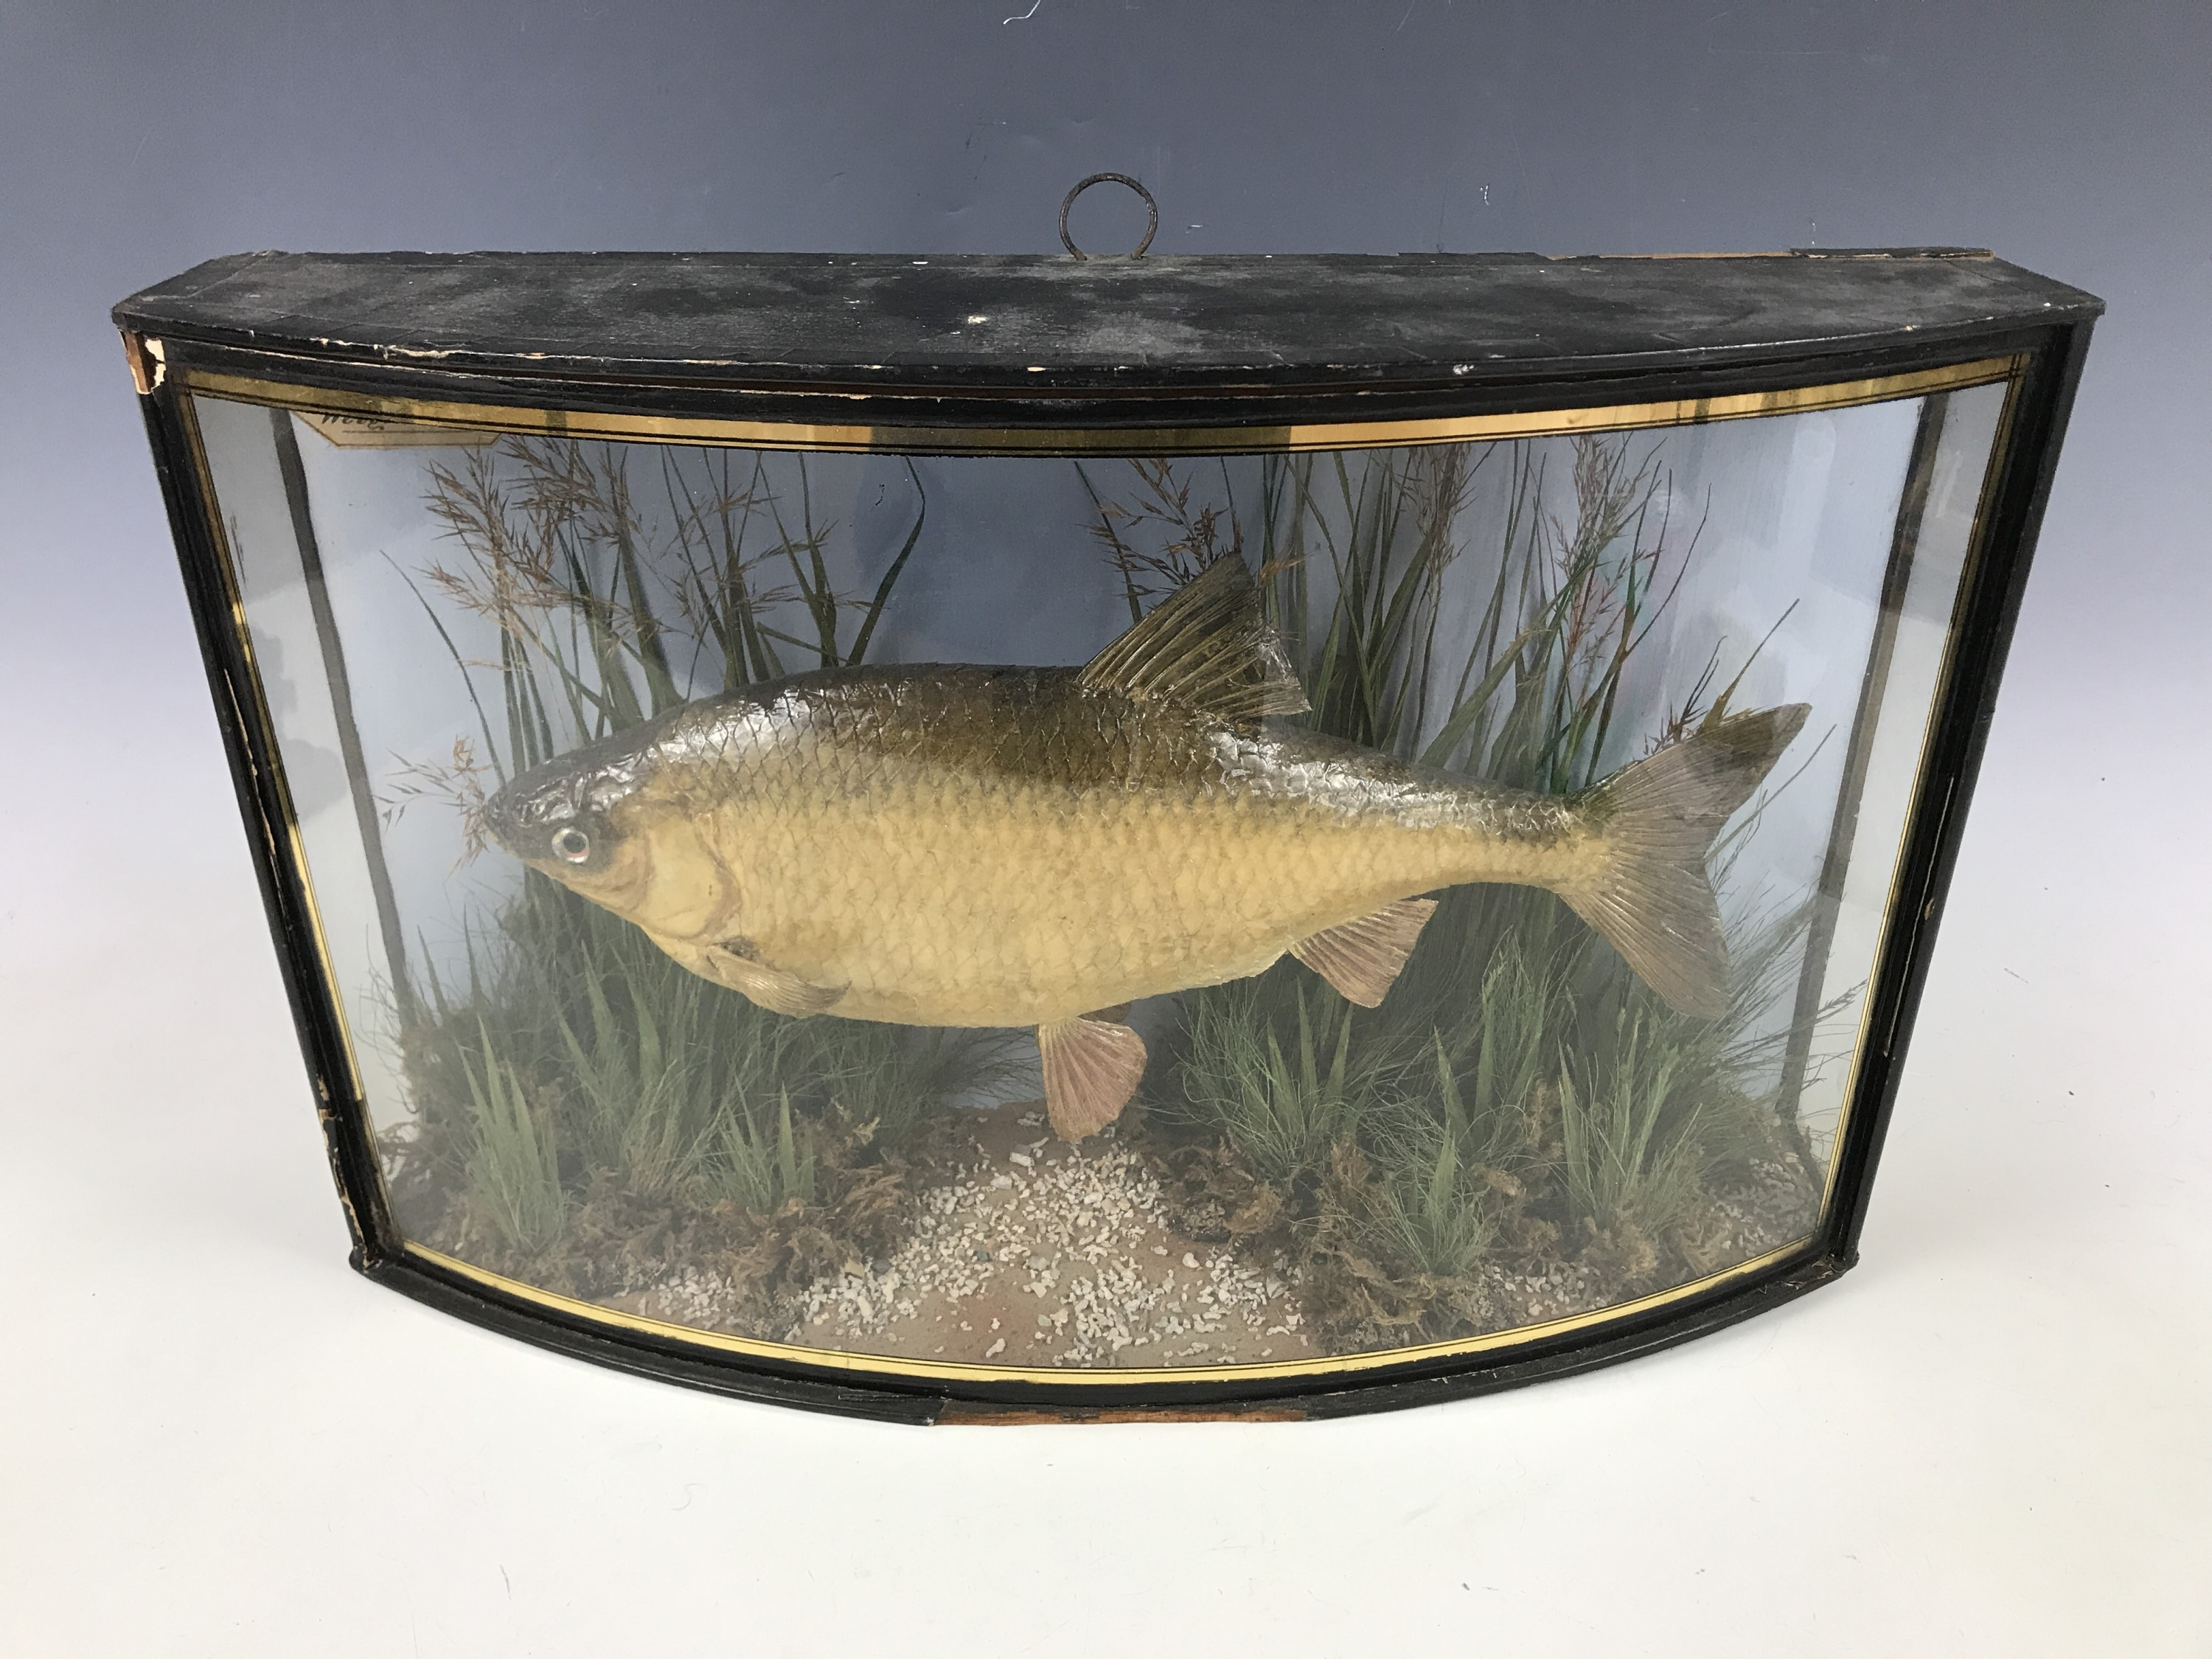 Lot 21 - A 19th Century taxidermy fish preserved by J Cooper of 28 Radnor Street, London, bearing